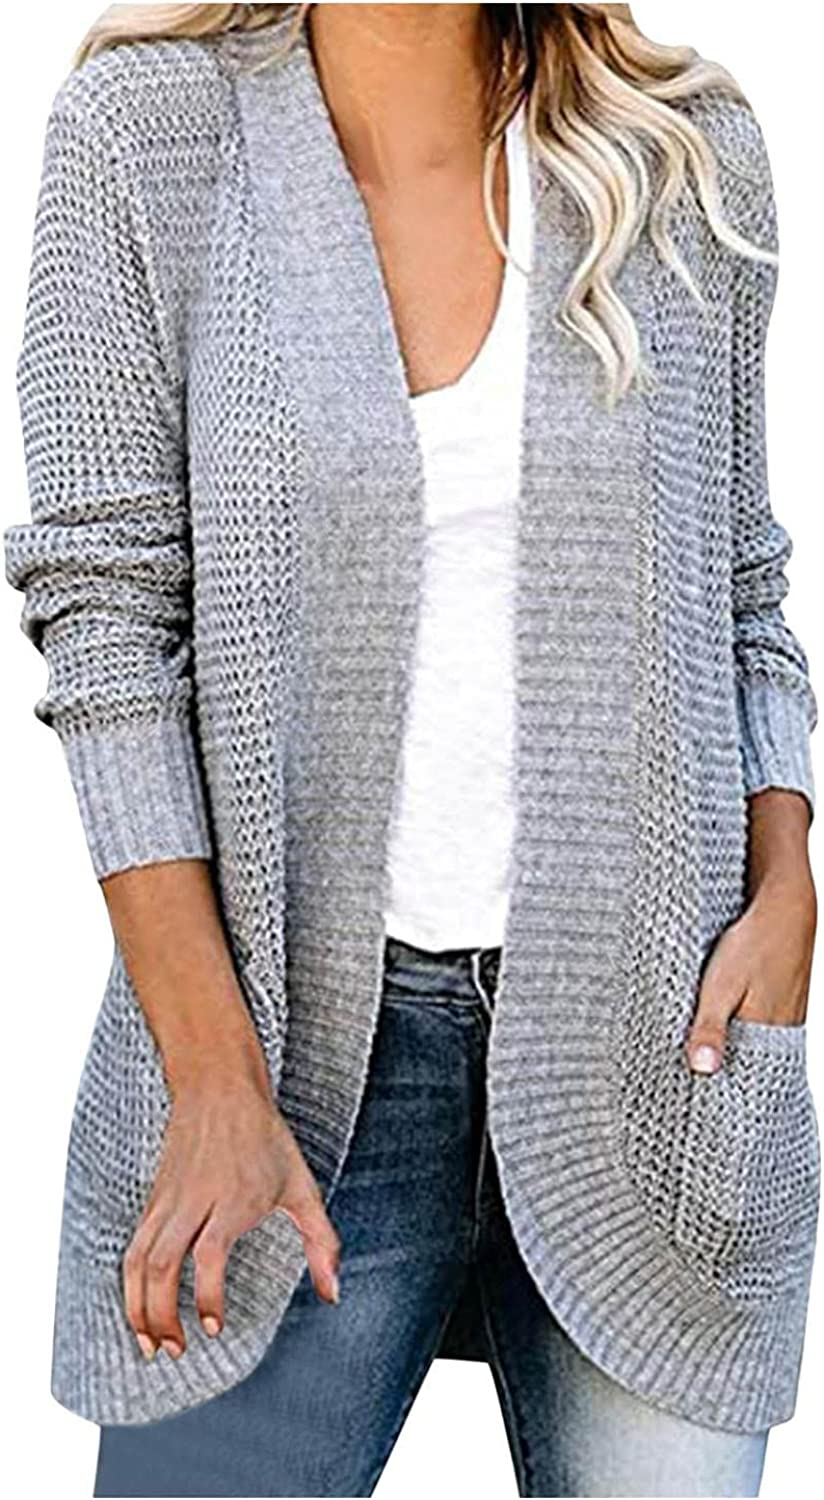 Womens Open Front Sweater Cardigans Jackets Soft Cozy Chunky Knit Loose Lightweight Sweater Outwear with Pockets